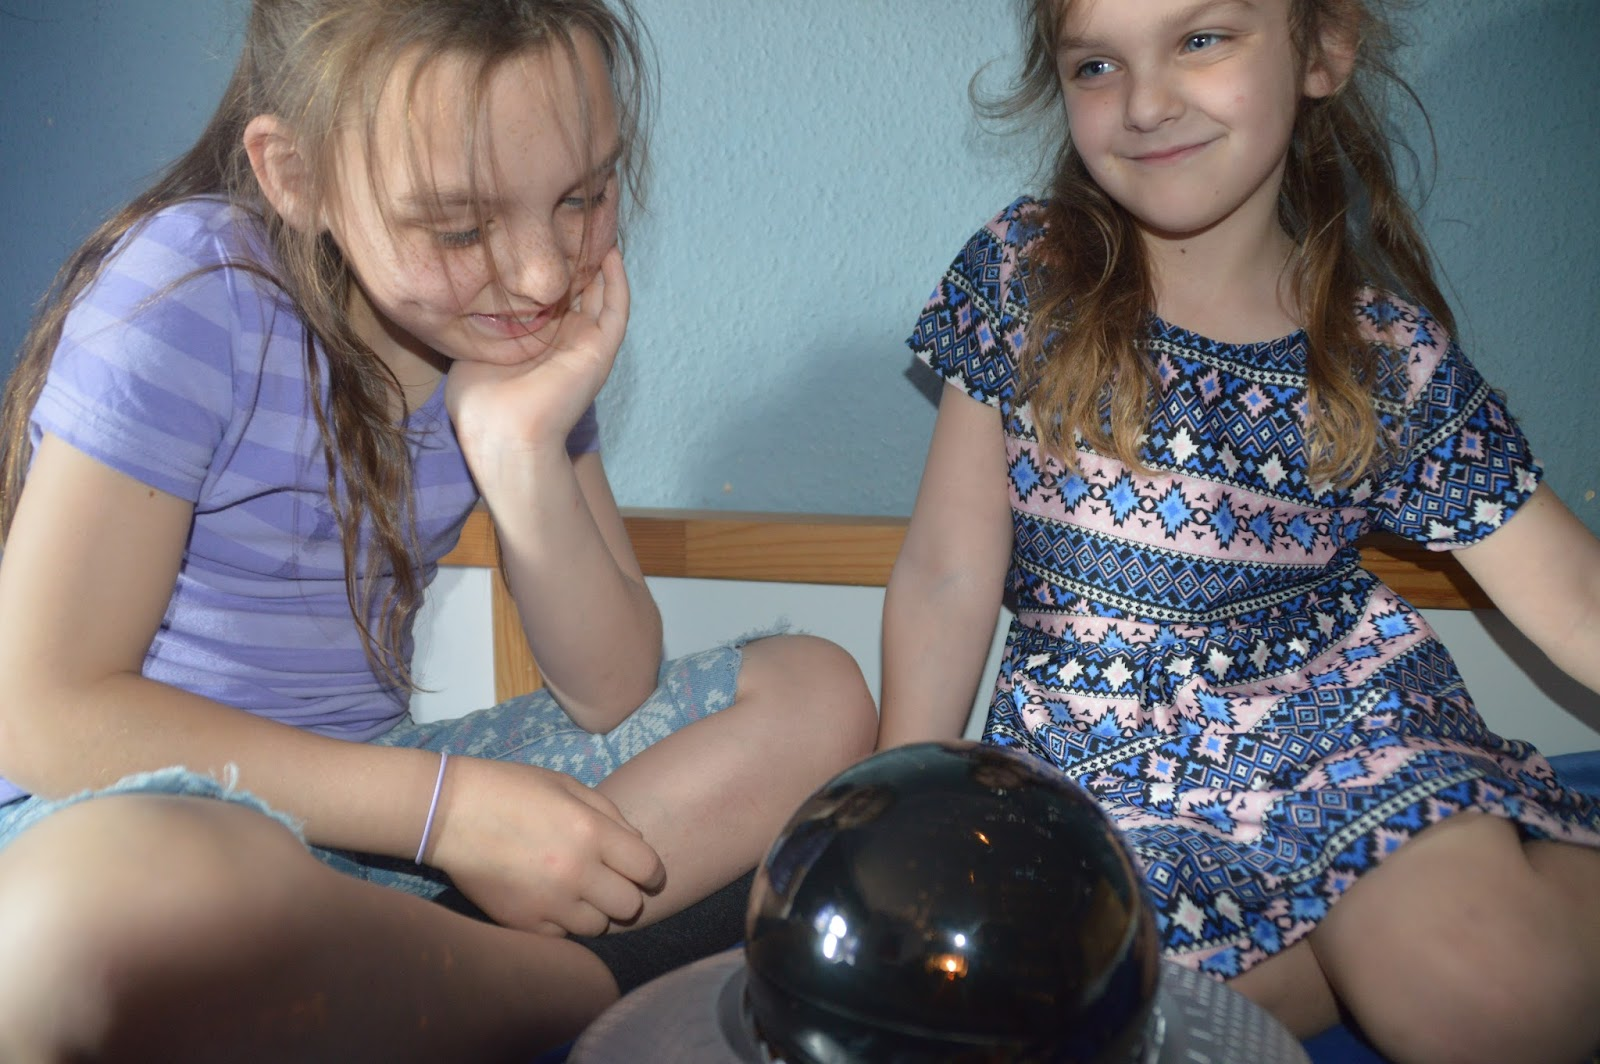 , Science is Fun for All #lettoysbetoys